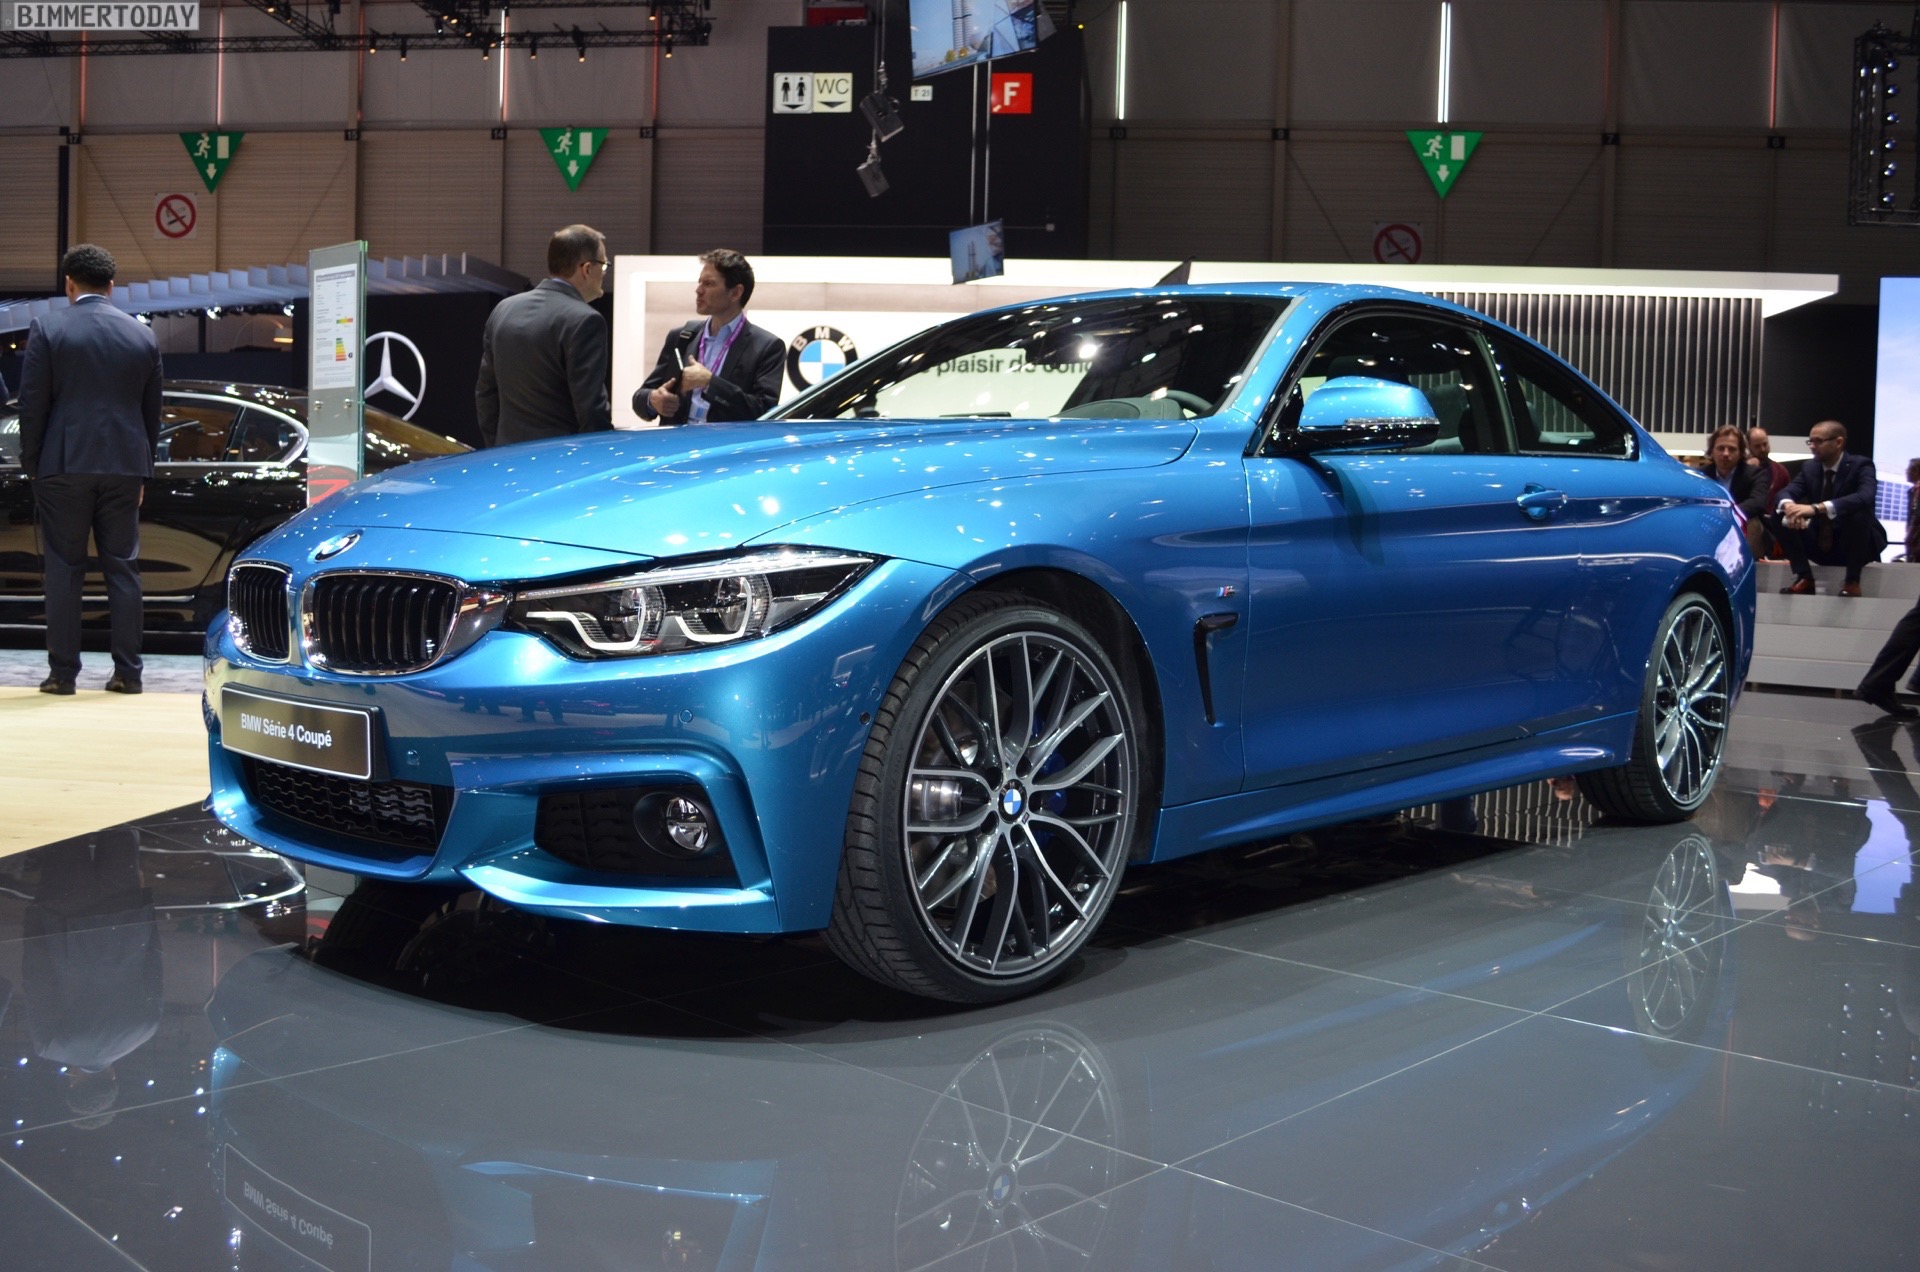 2017 BMW 4er F32 LCI Facelift Coupe 440i Snapper Rocks Blue Genf Live 29 2